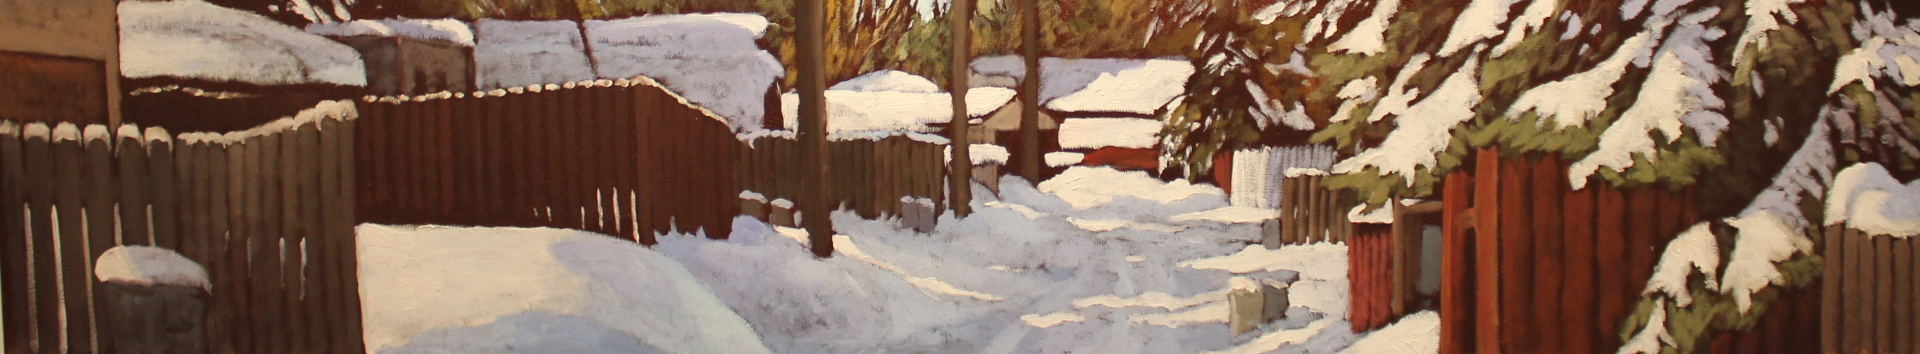 ALLEY'S WINTER BLANKET - 12X60 - OIL ON CANVAS - 2014